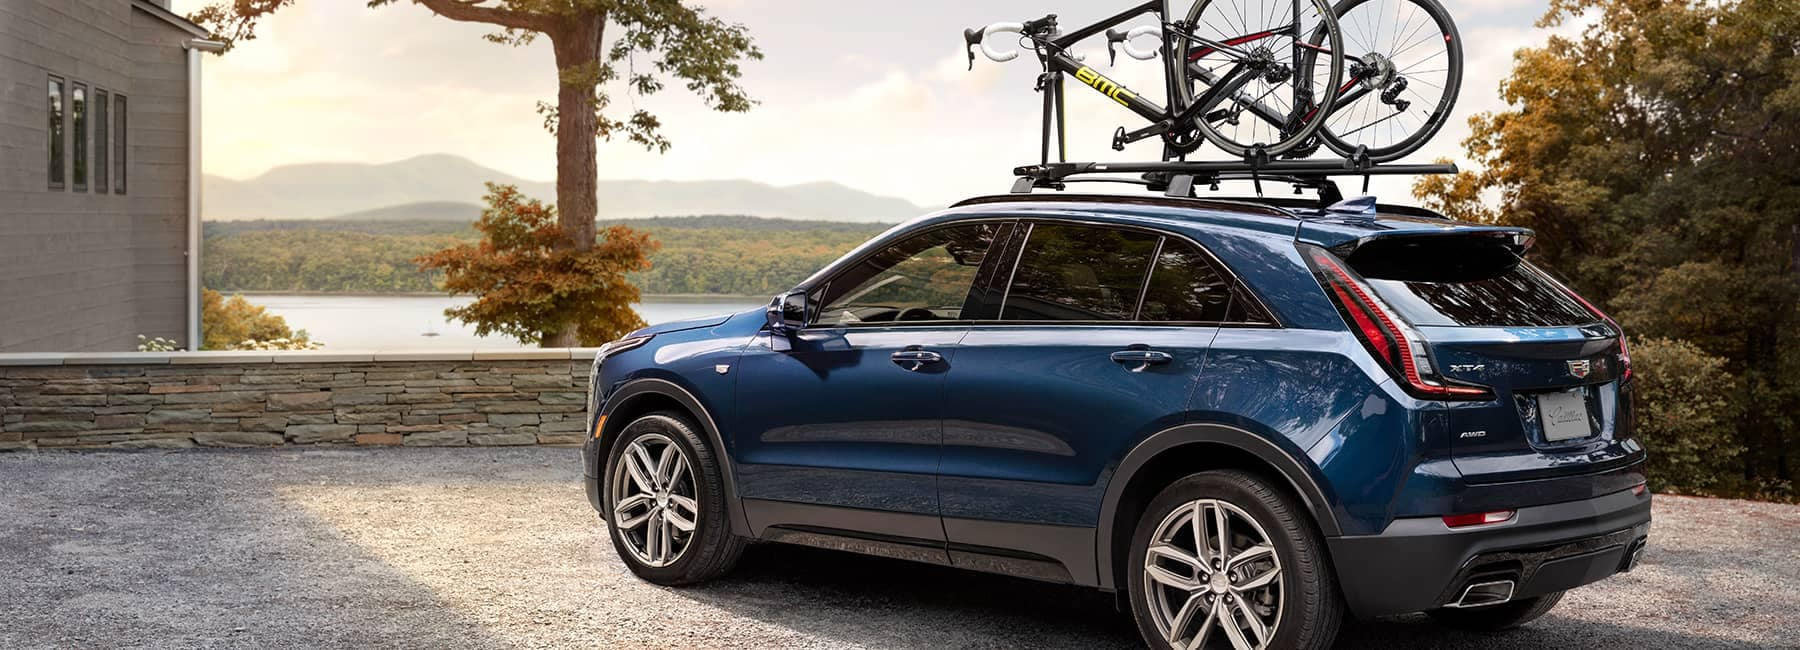 Cadillac Banner Image - A royal Blue Cadillac SUV/Crossover with a bike on the roof rack parked at a lake